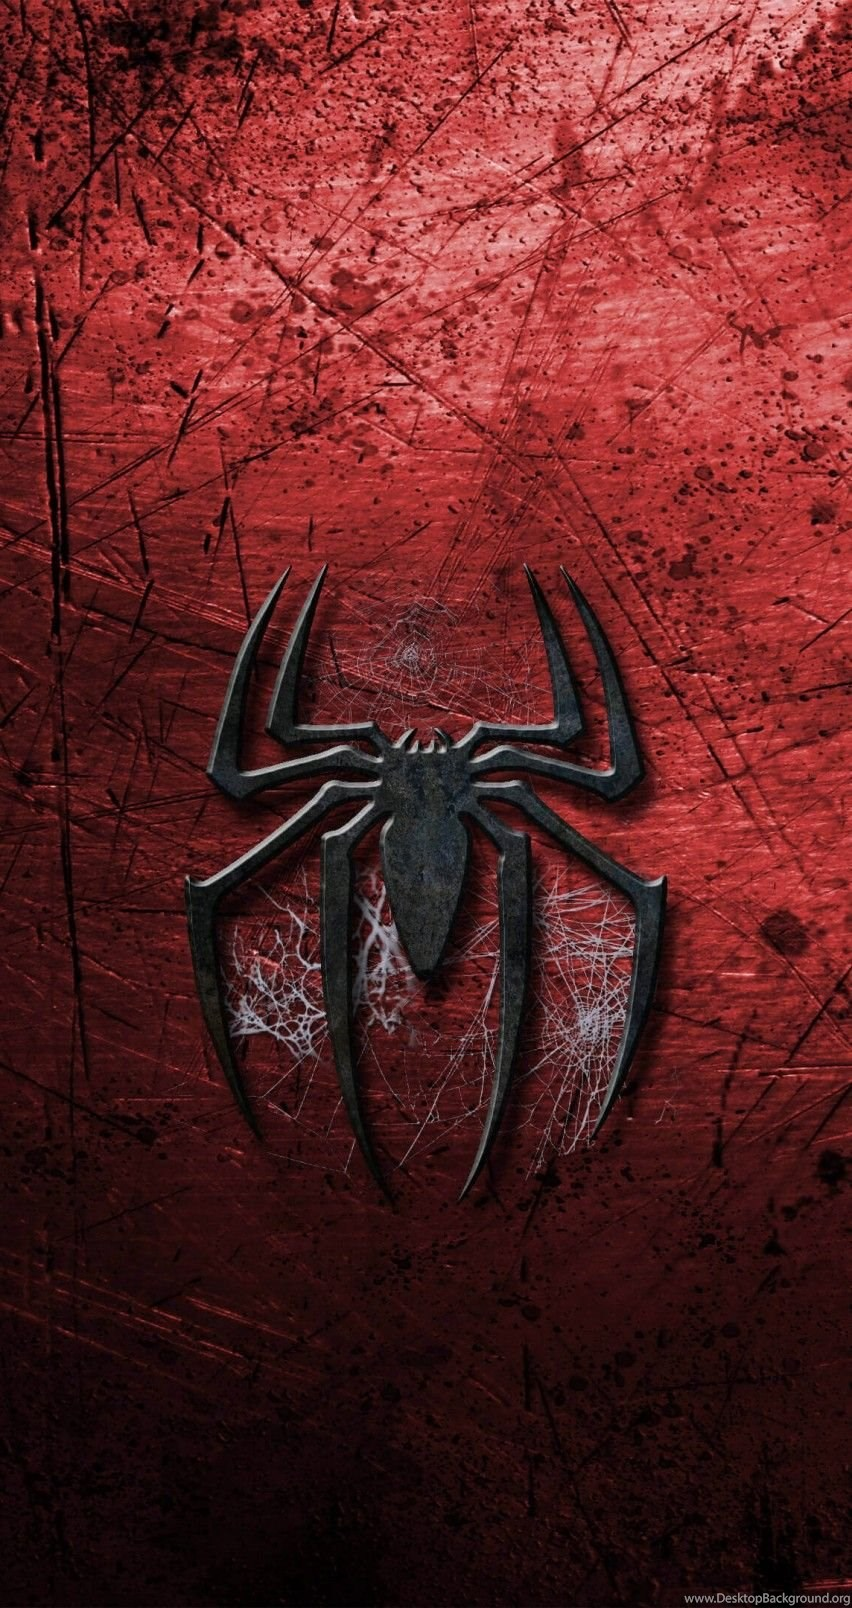 Download Grungy Spider Man Logo HD Wallpapers For iPhone 6 6s 852x1608